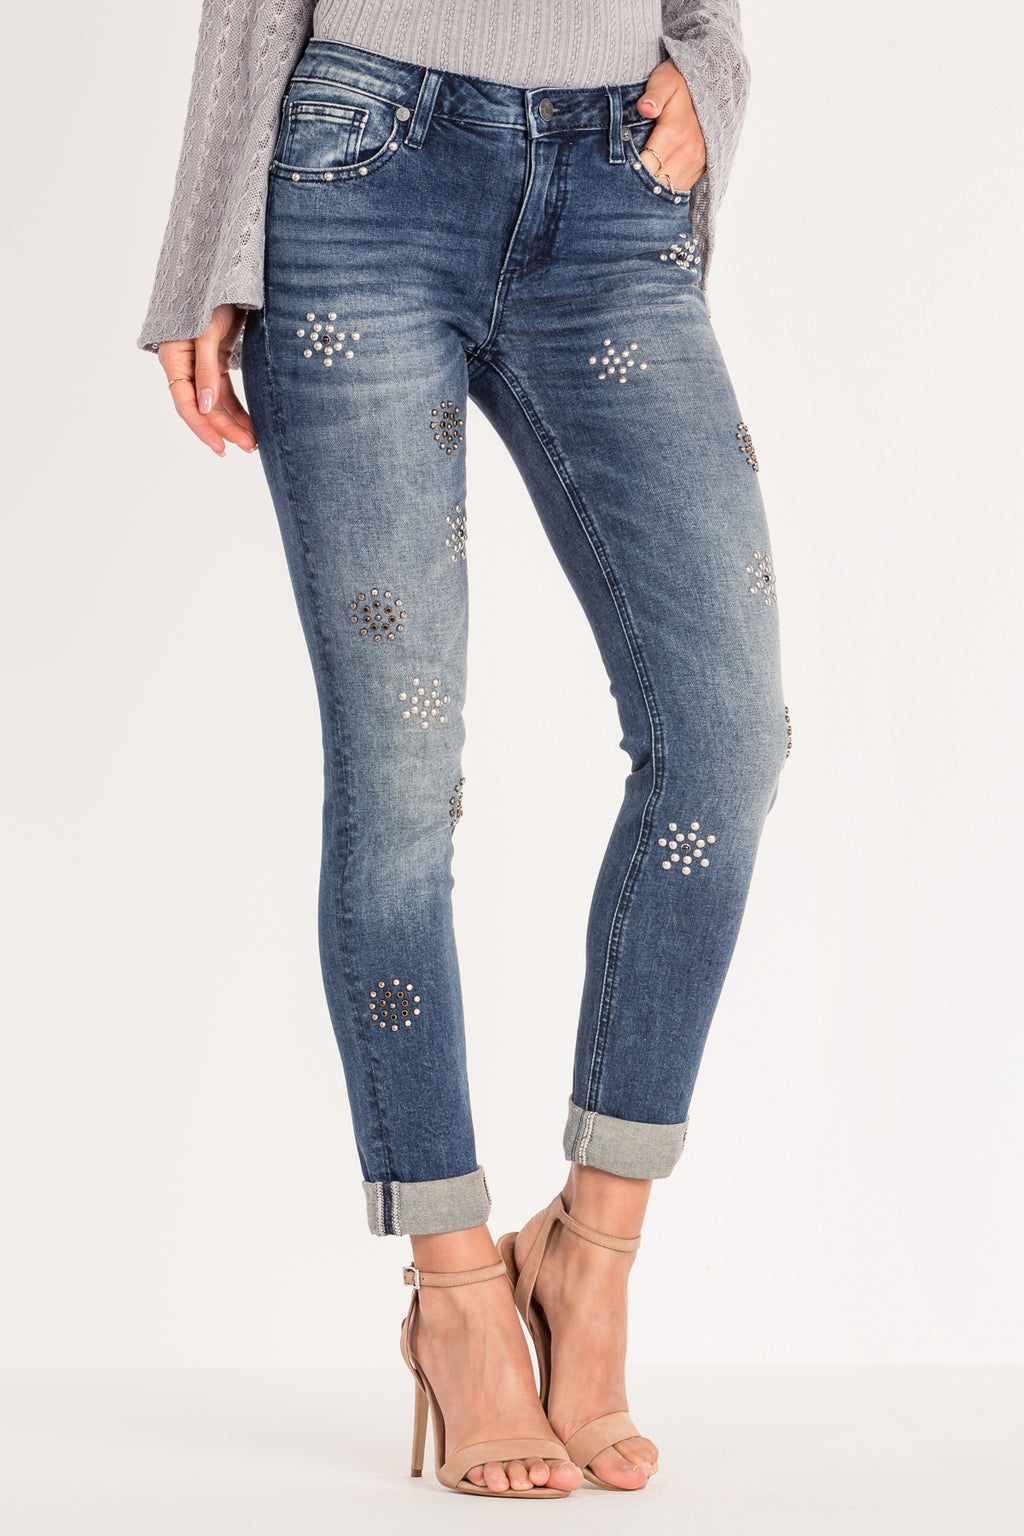 fcde7fbb35b92 TIMELESS STUD CUFFED ANKLE SKINNY JEANS